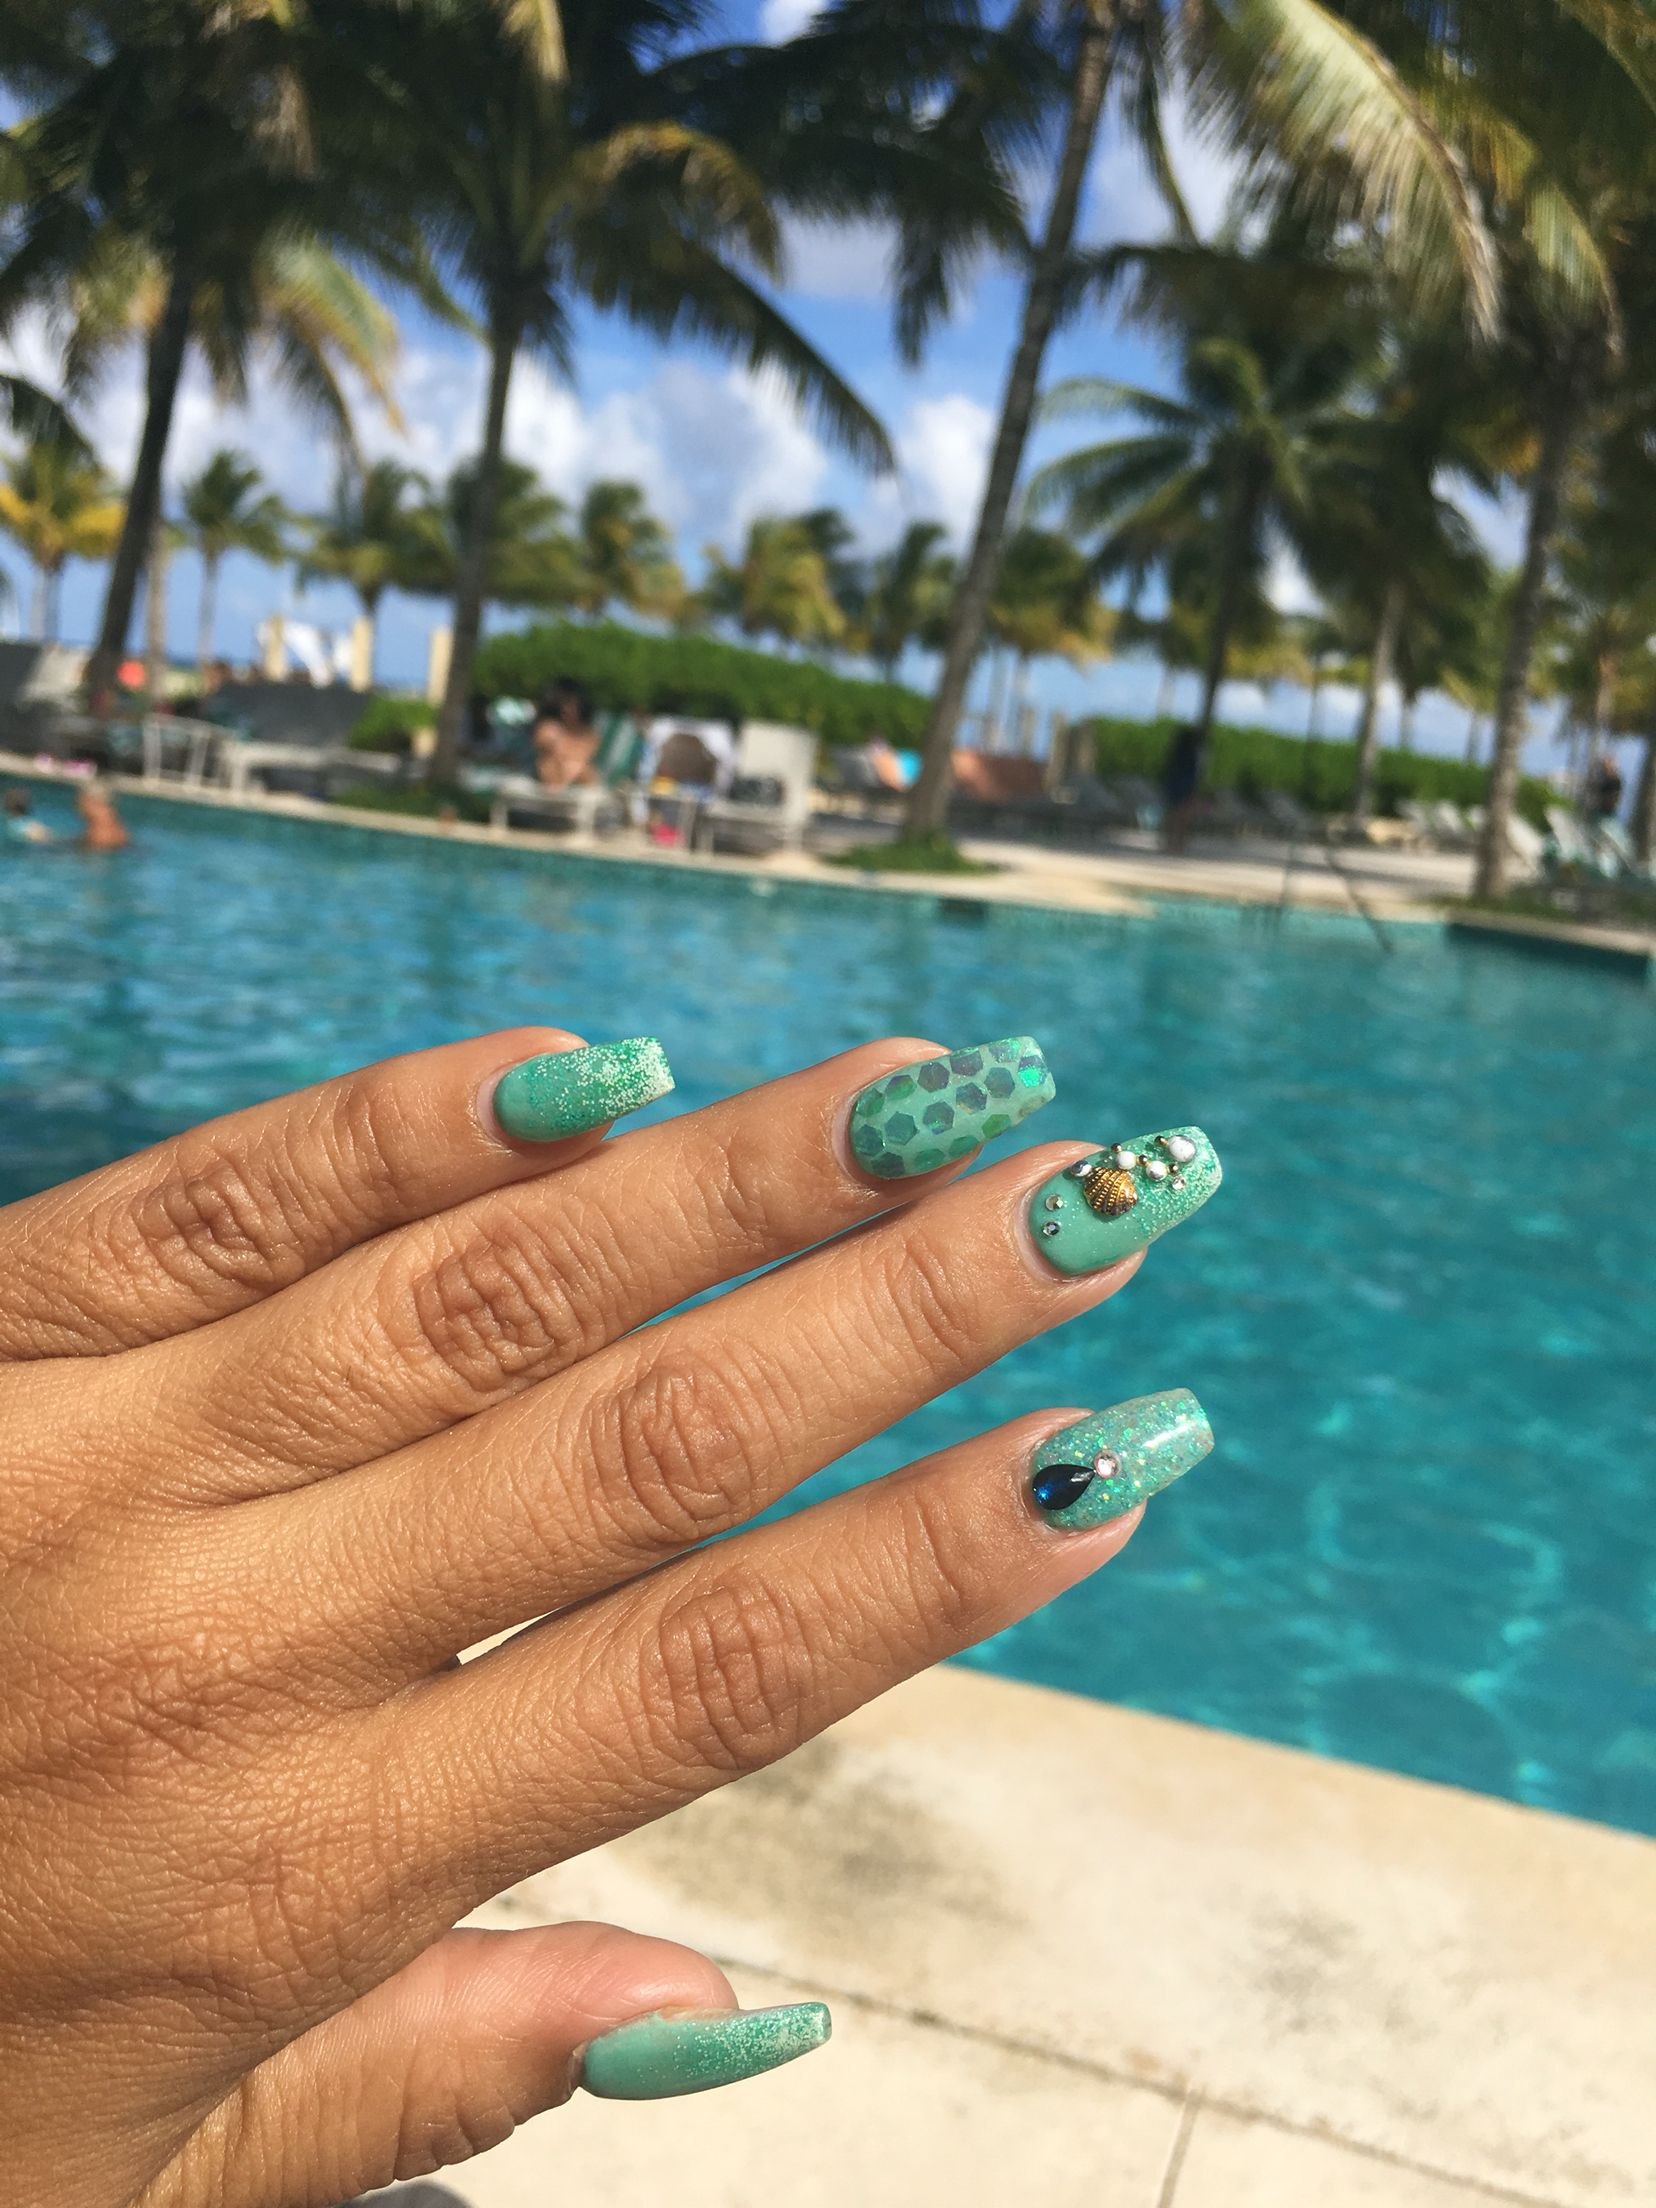 Beach Nails By Anel Exotic In Chula Vista California The Best